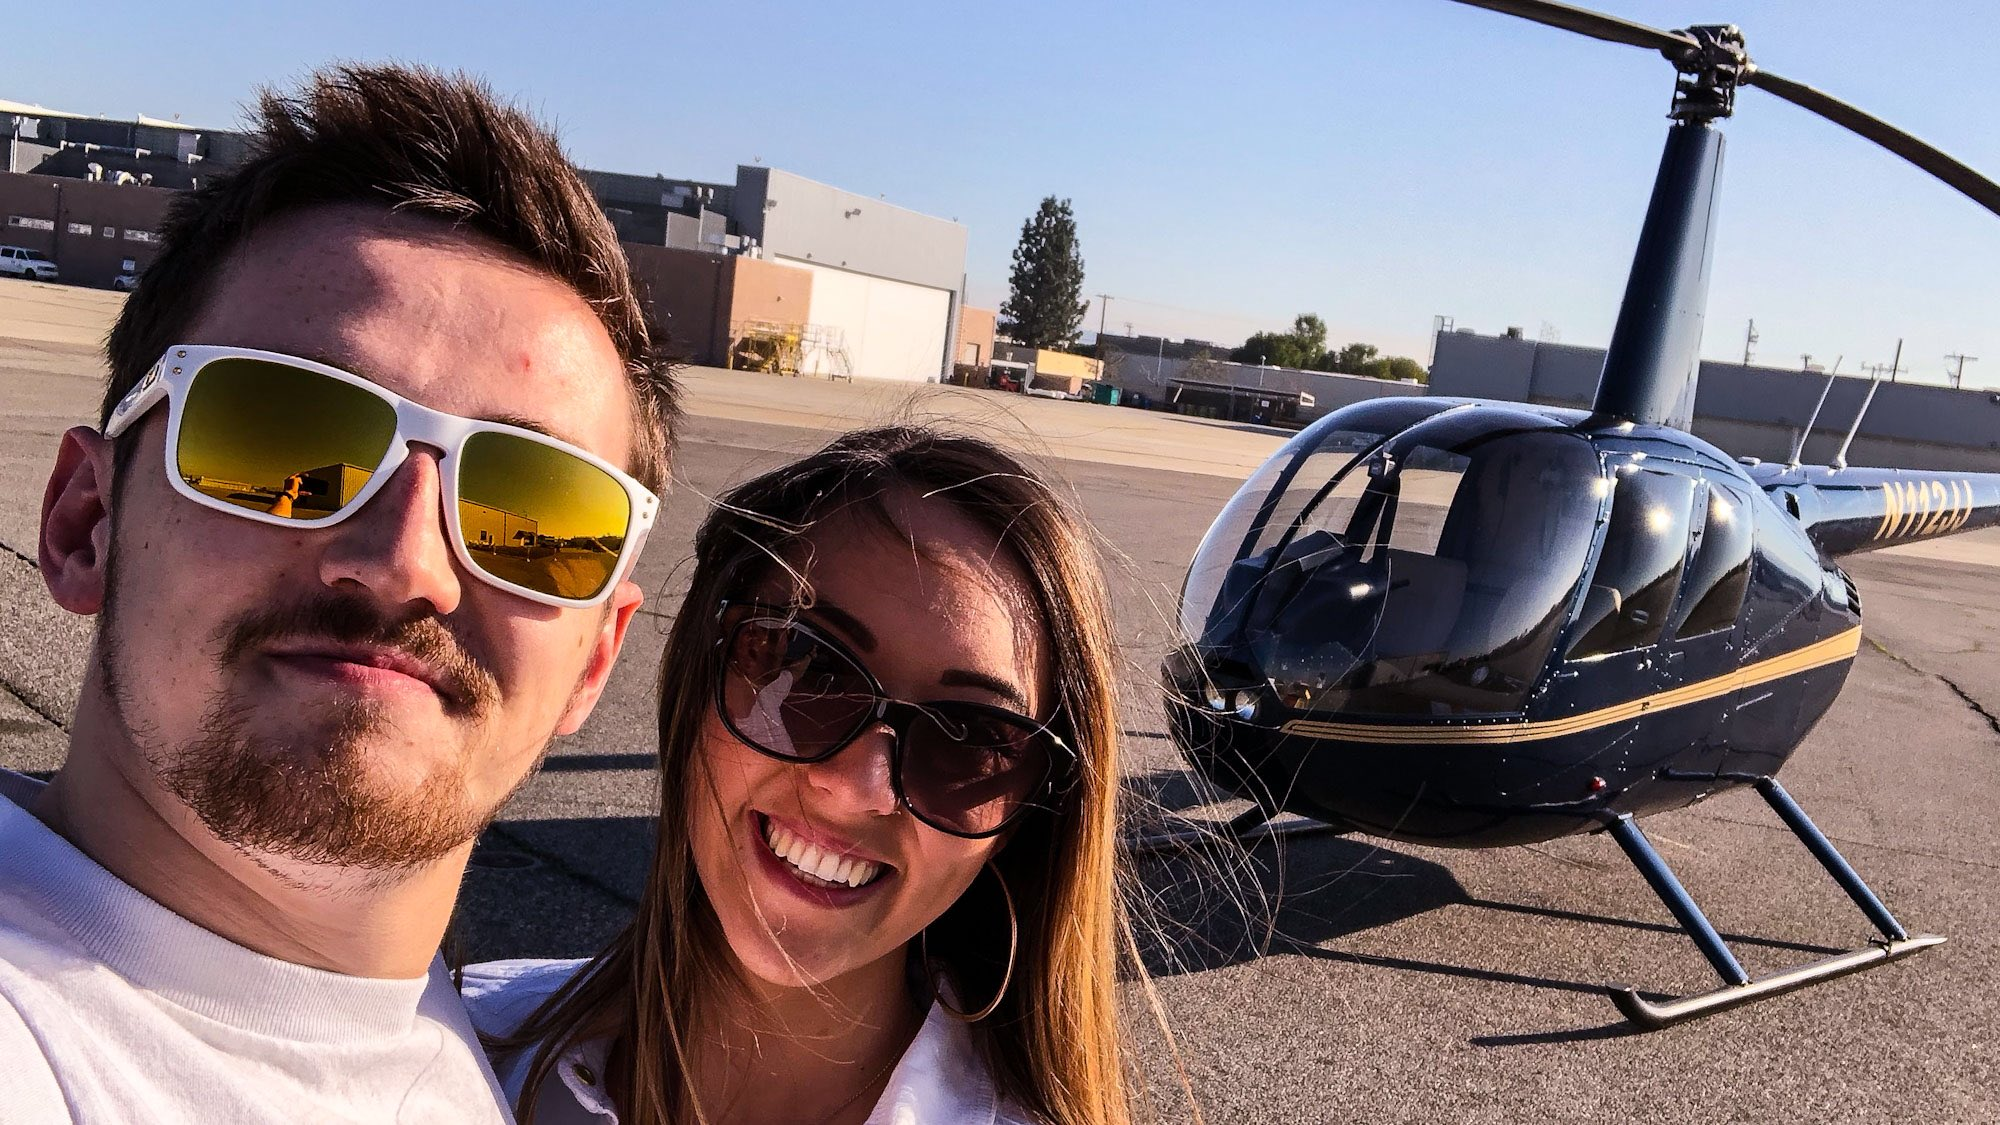 HELICOPTER SURPRISE FOR MY GIRLFRIEND!: https://t.co/kdmcEP7w4l via @YouTube https://t.co/P44sIDBvGa